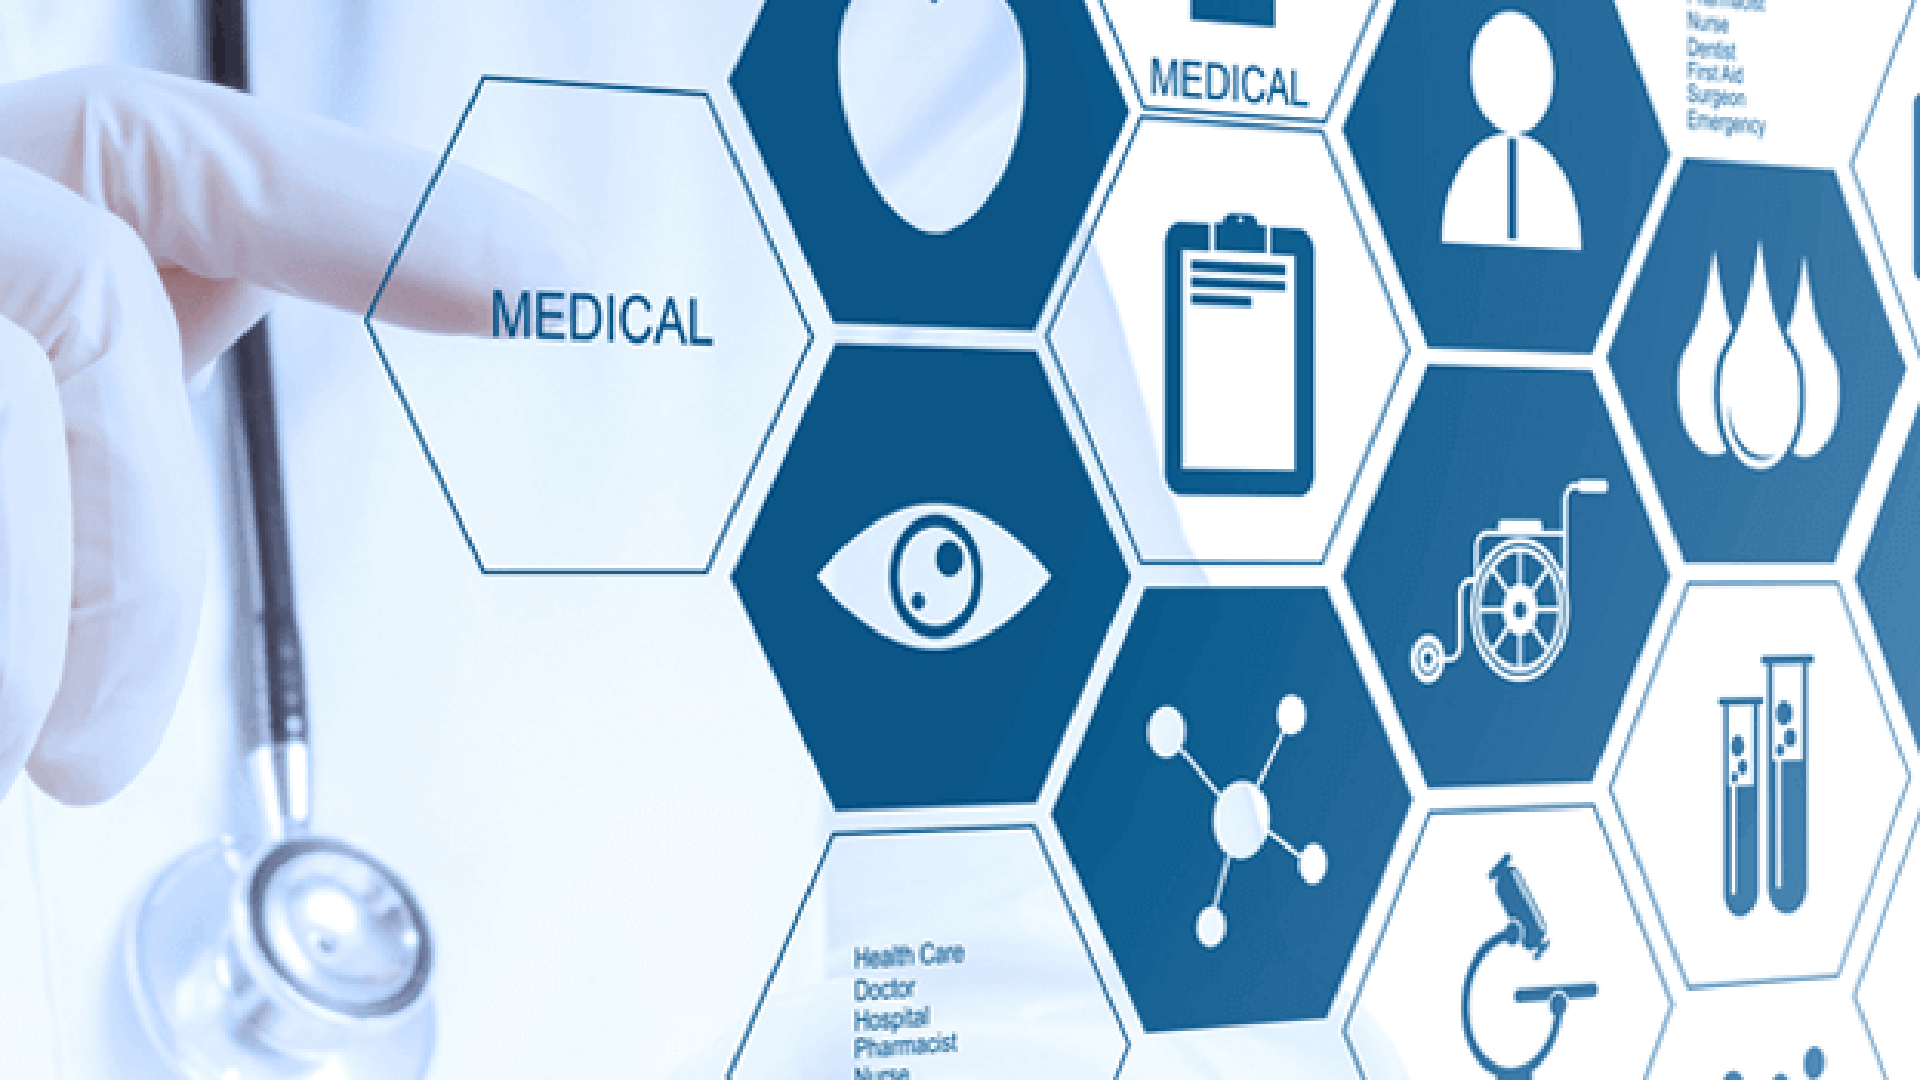 Healthcare Technology Trends for 2016